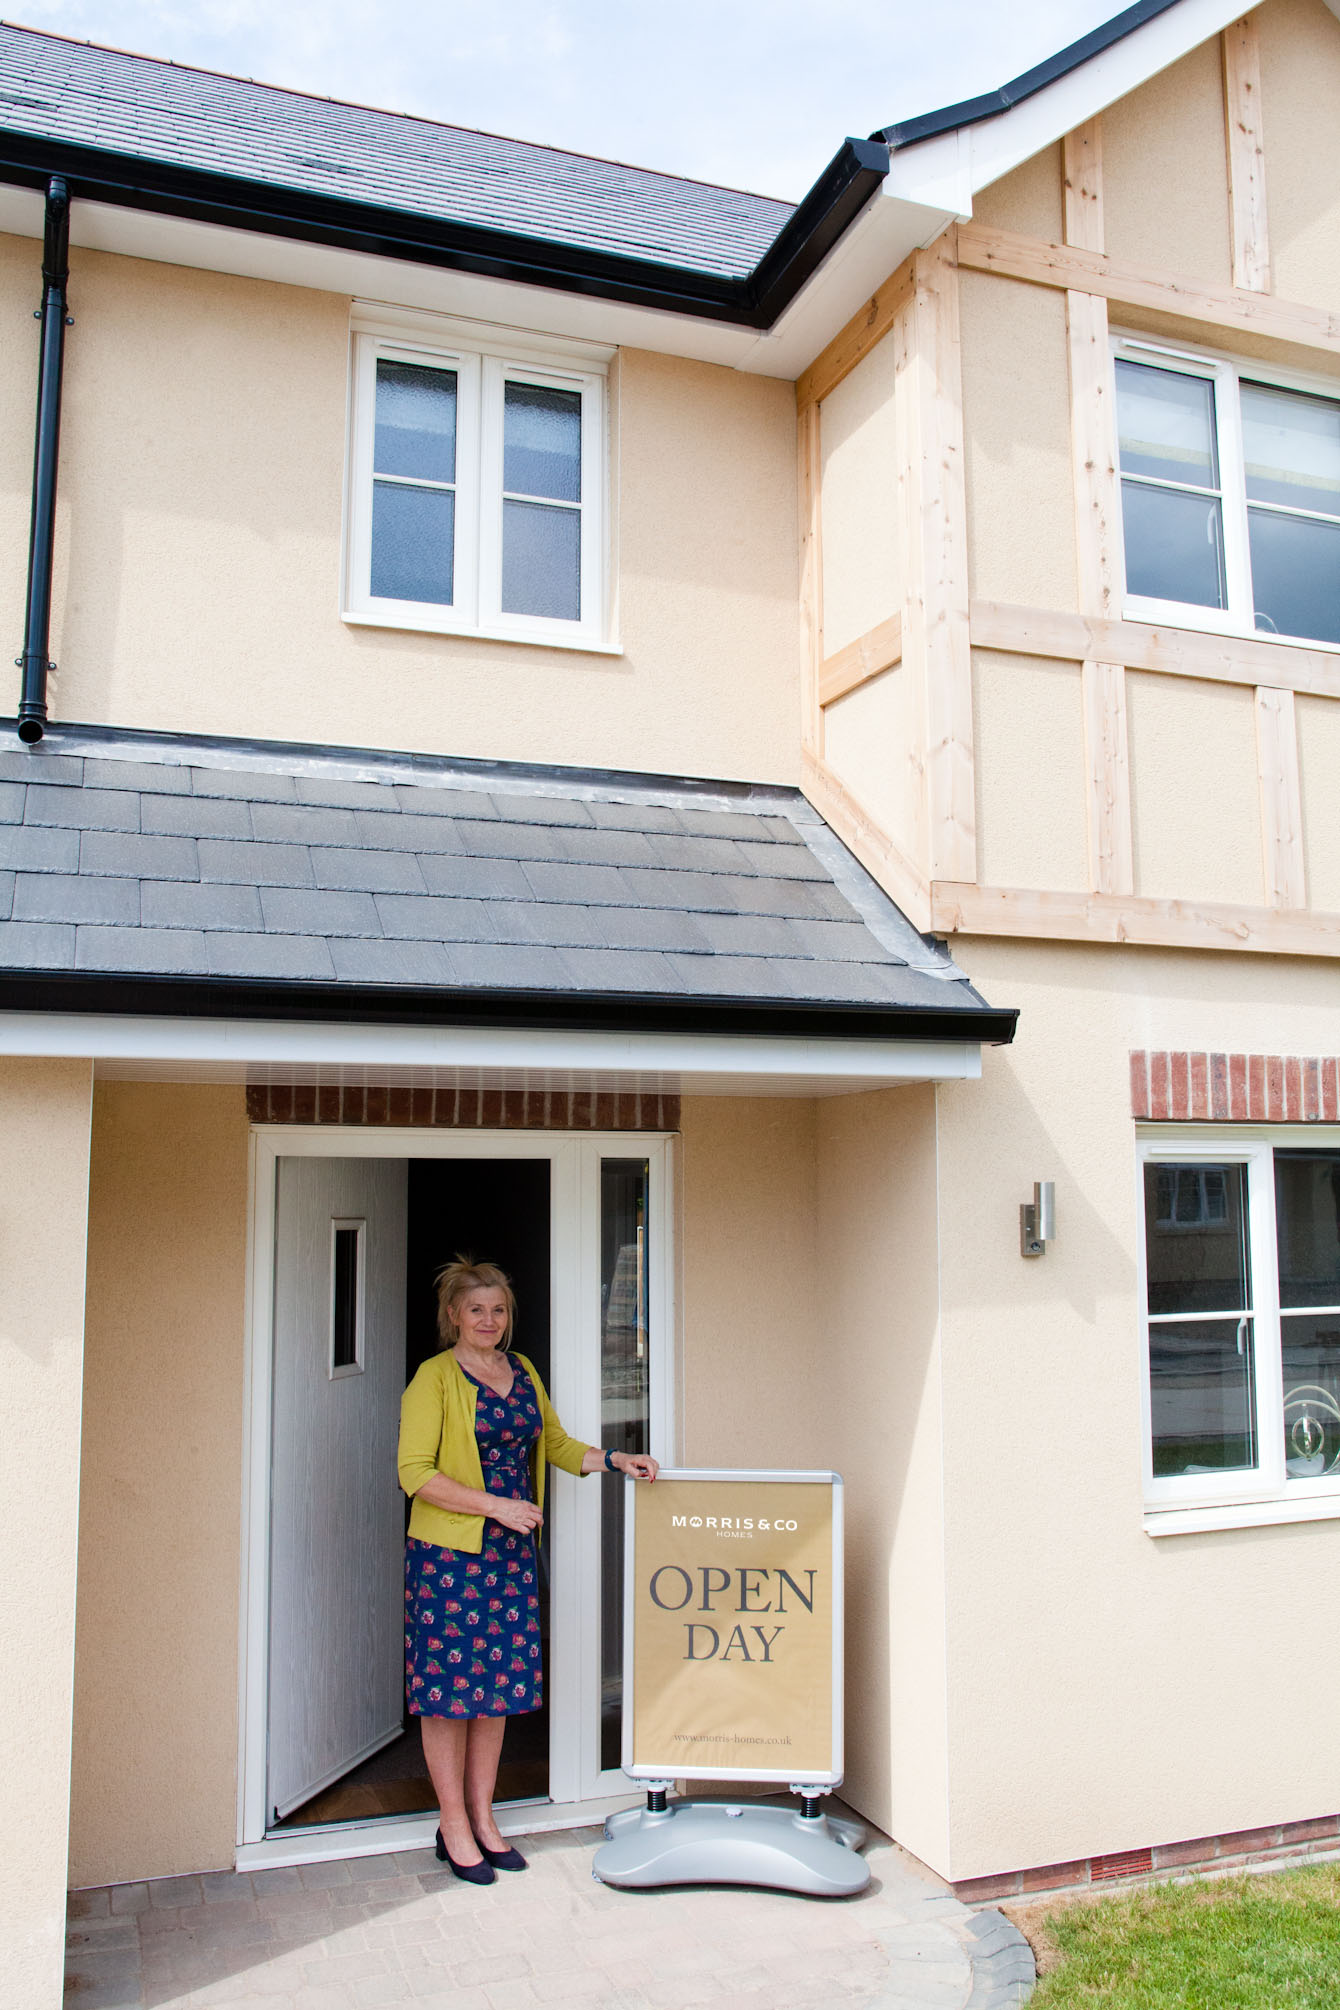 Open day to showcase new luxury homes on The Mount